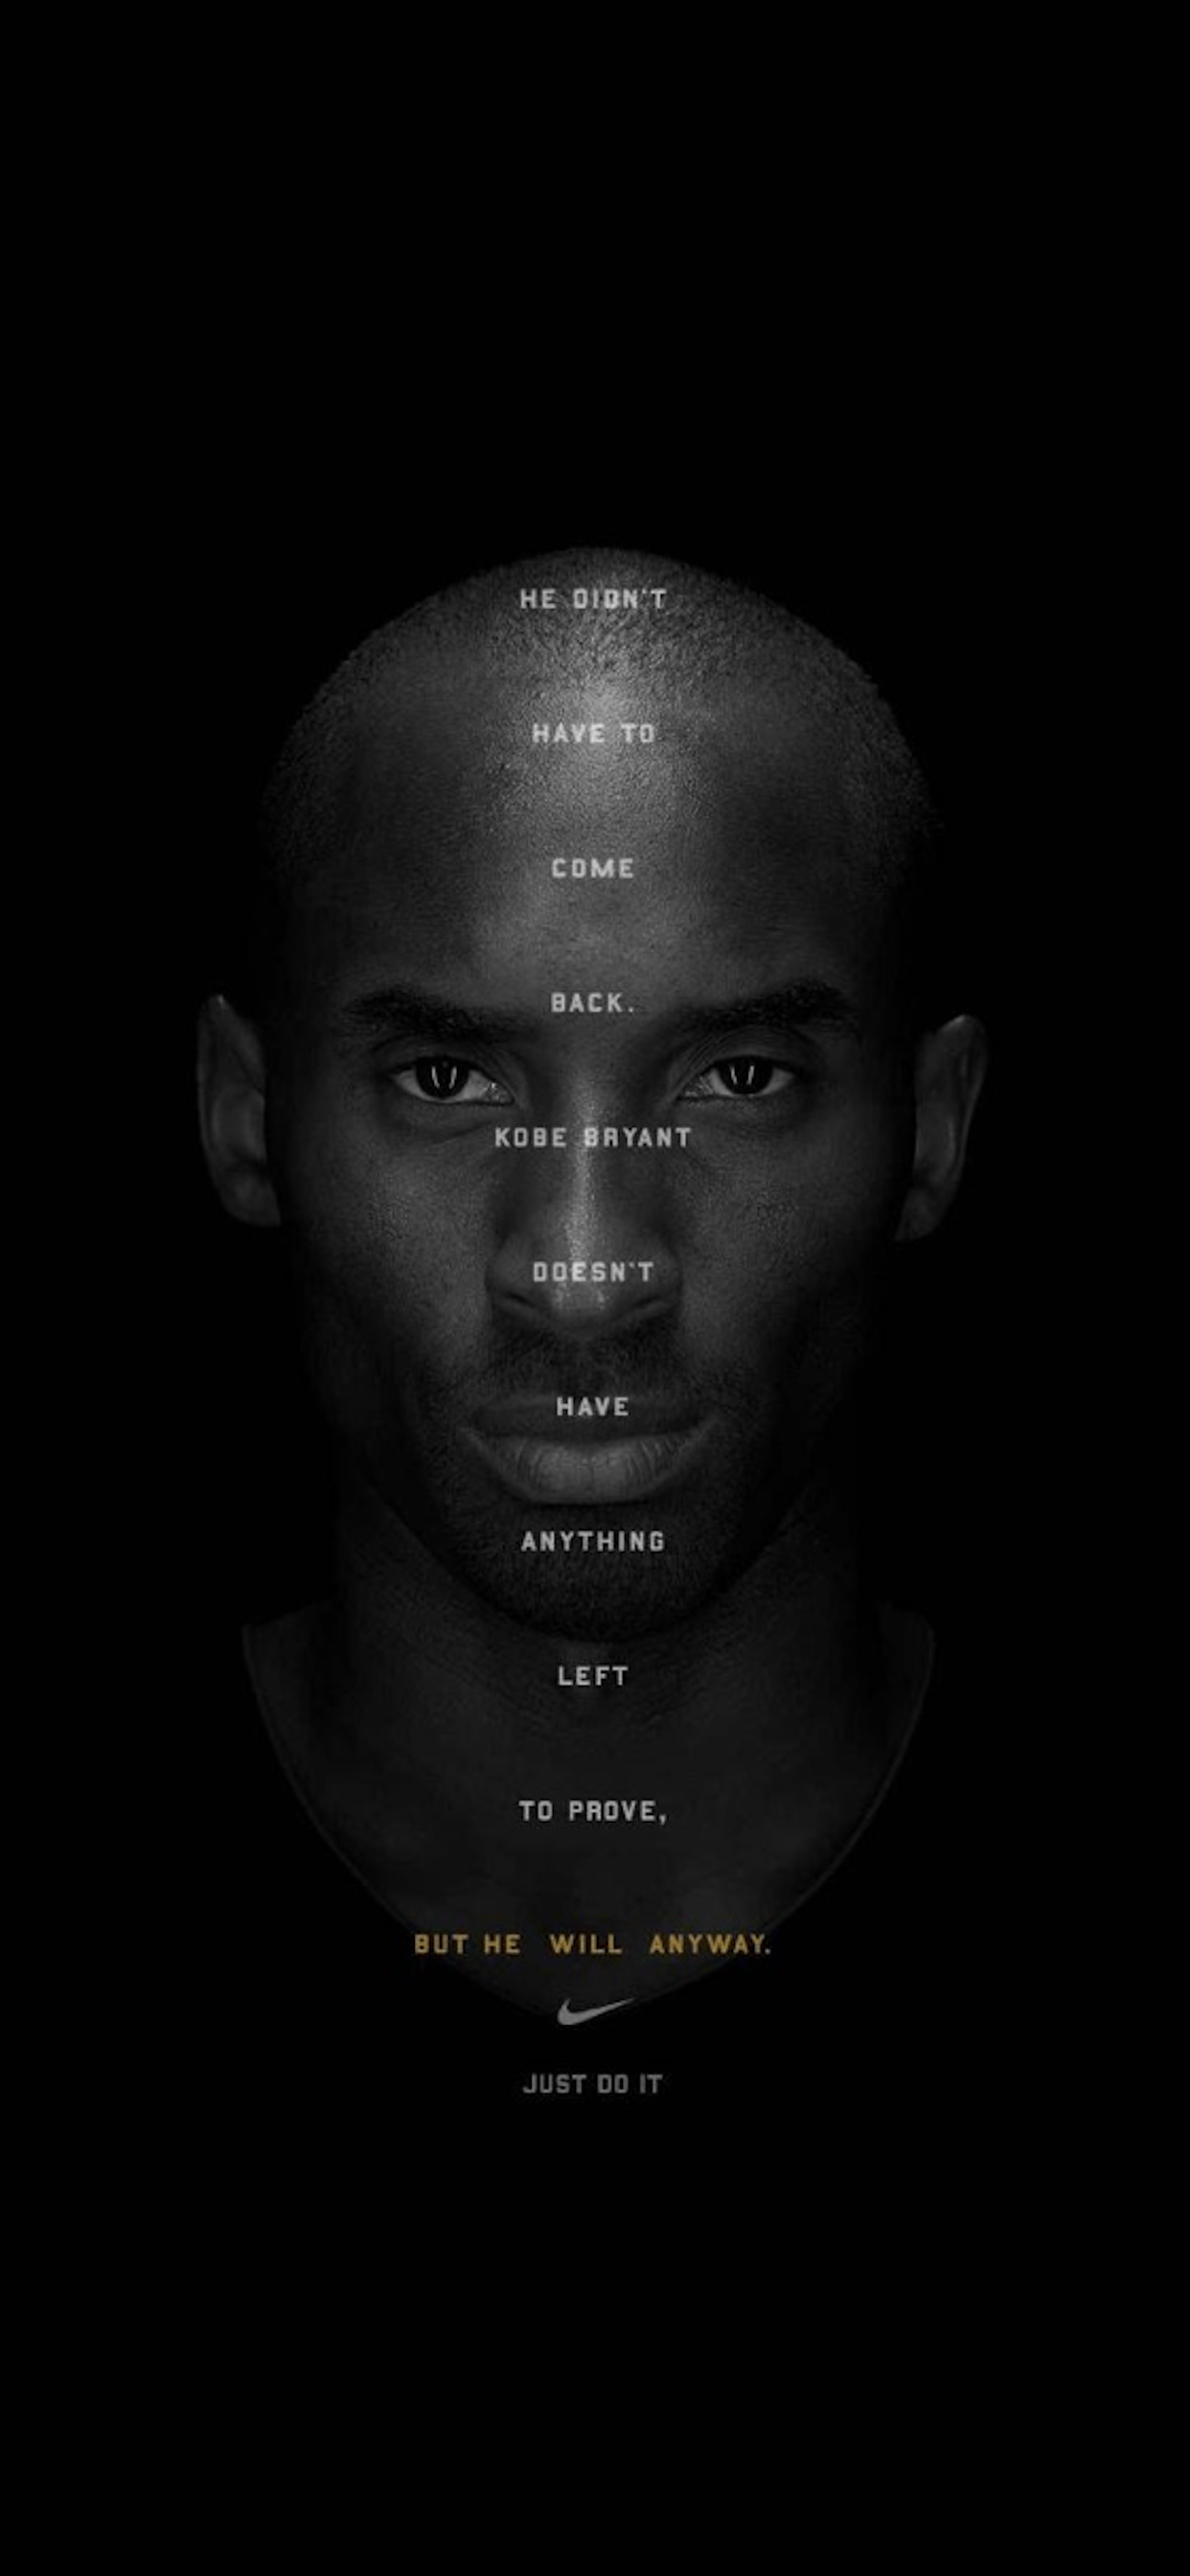 iPhone wallpapers basket kobe bryant face Kobe Byant